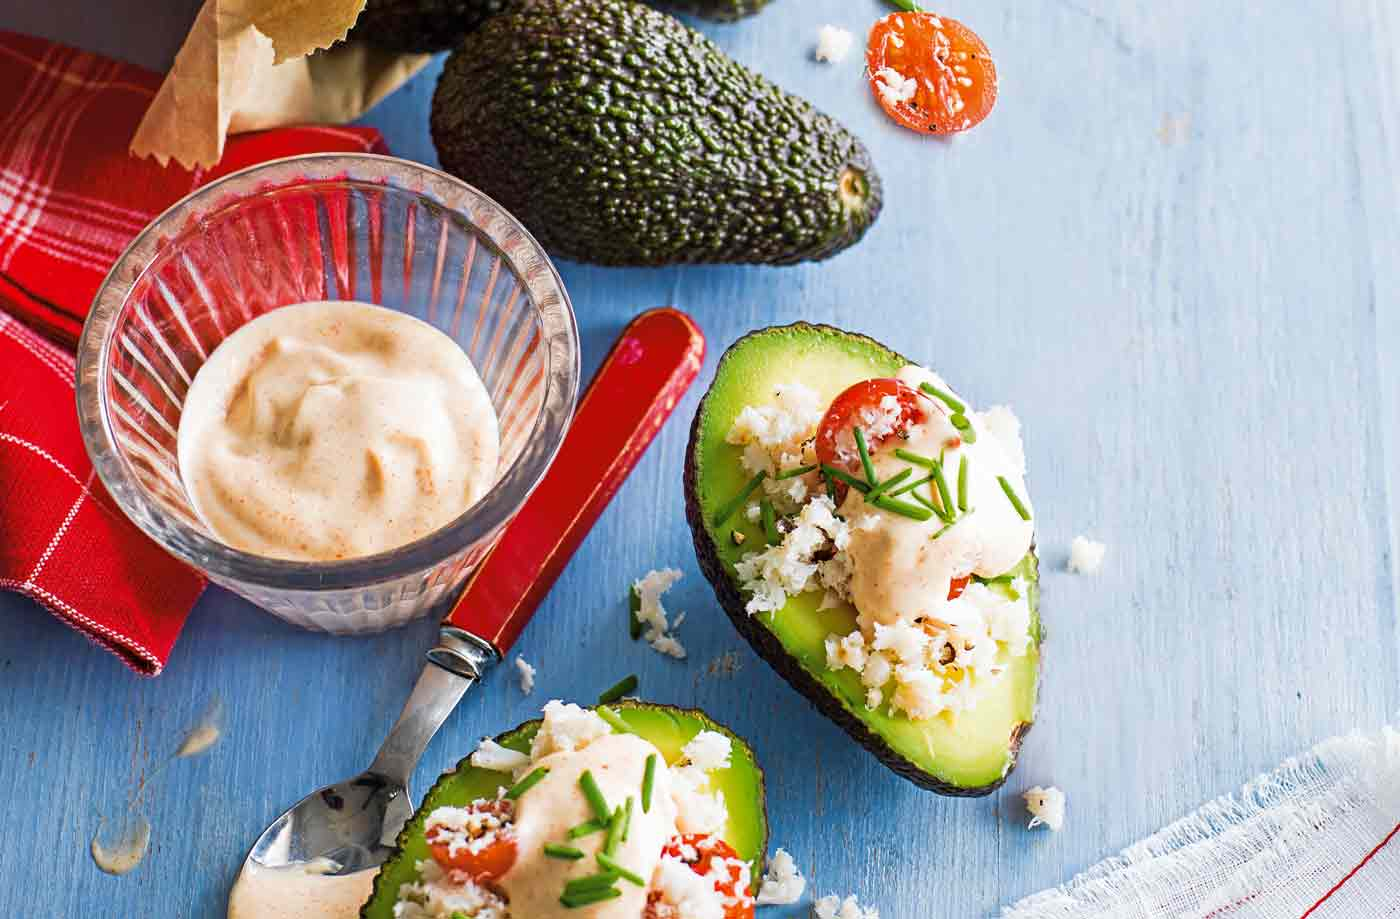 Avocado stuffed with crab and paprika mayonnaise recipe